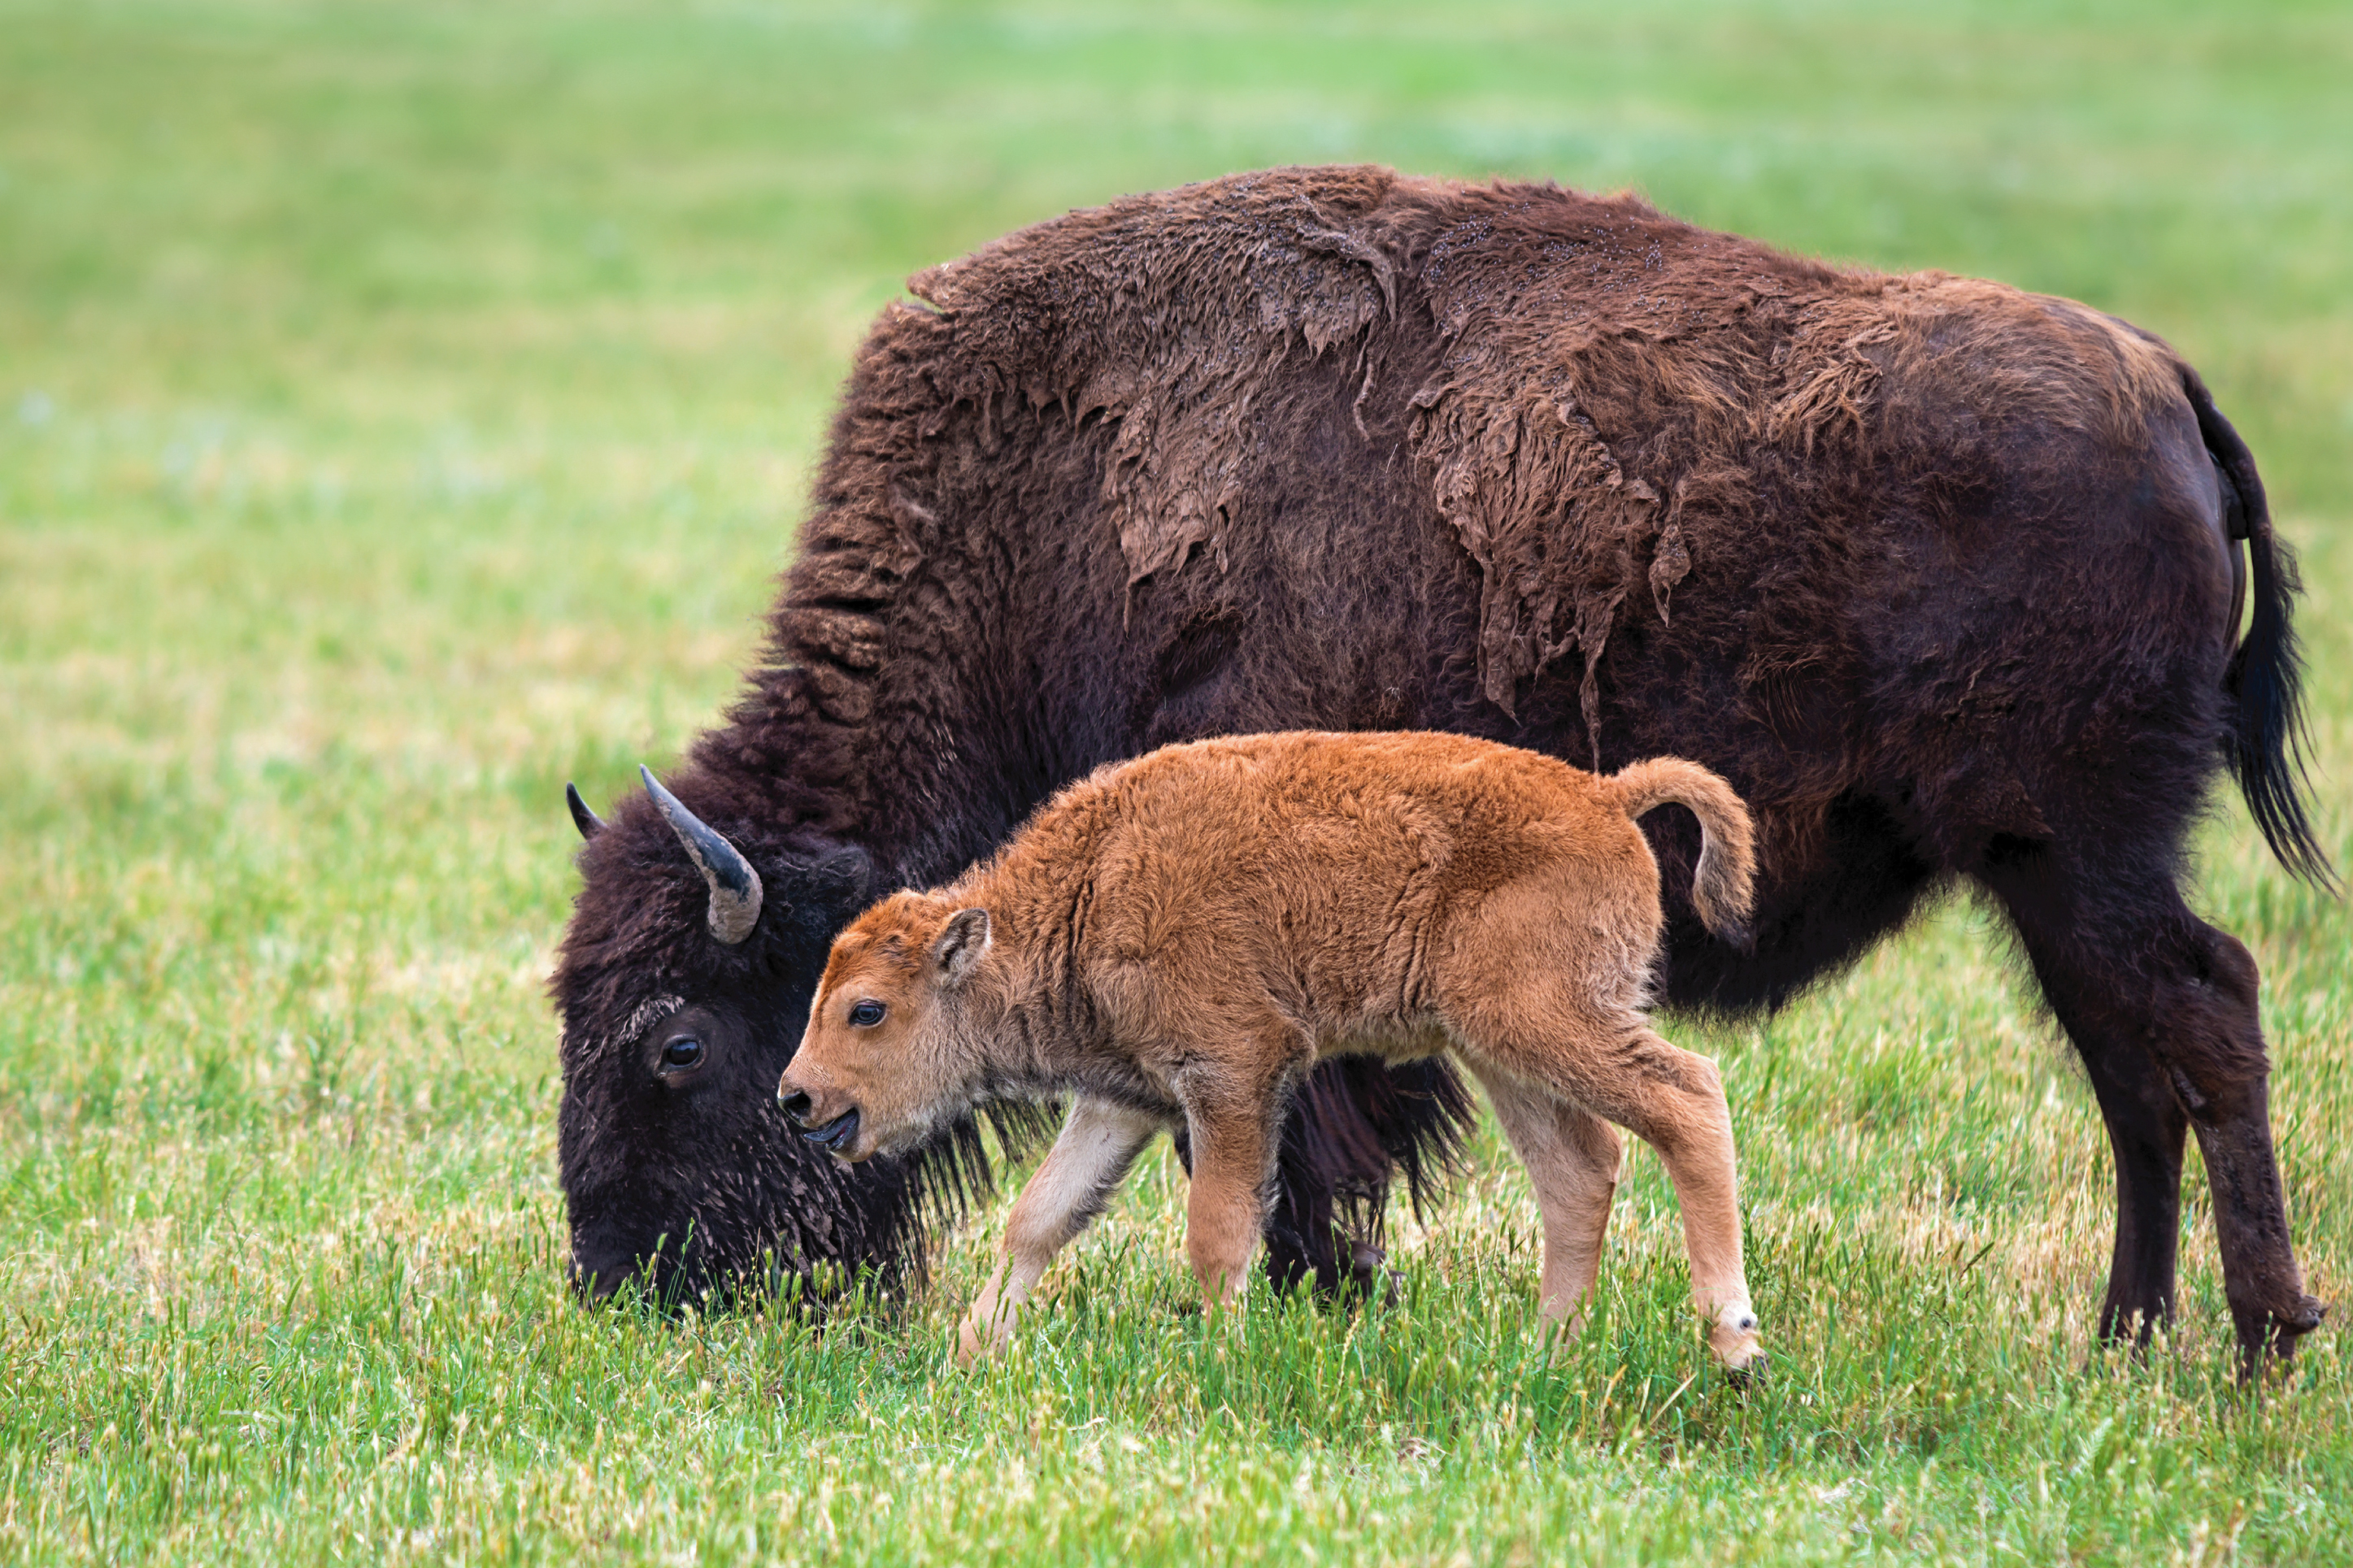 a bison calf, also known as a red dog